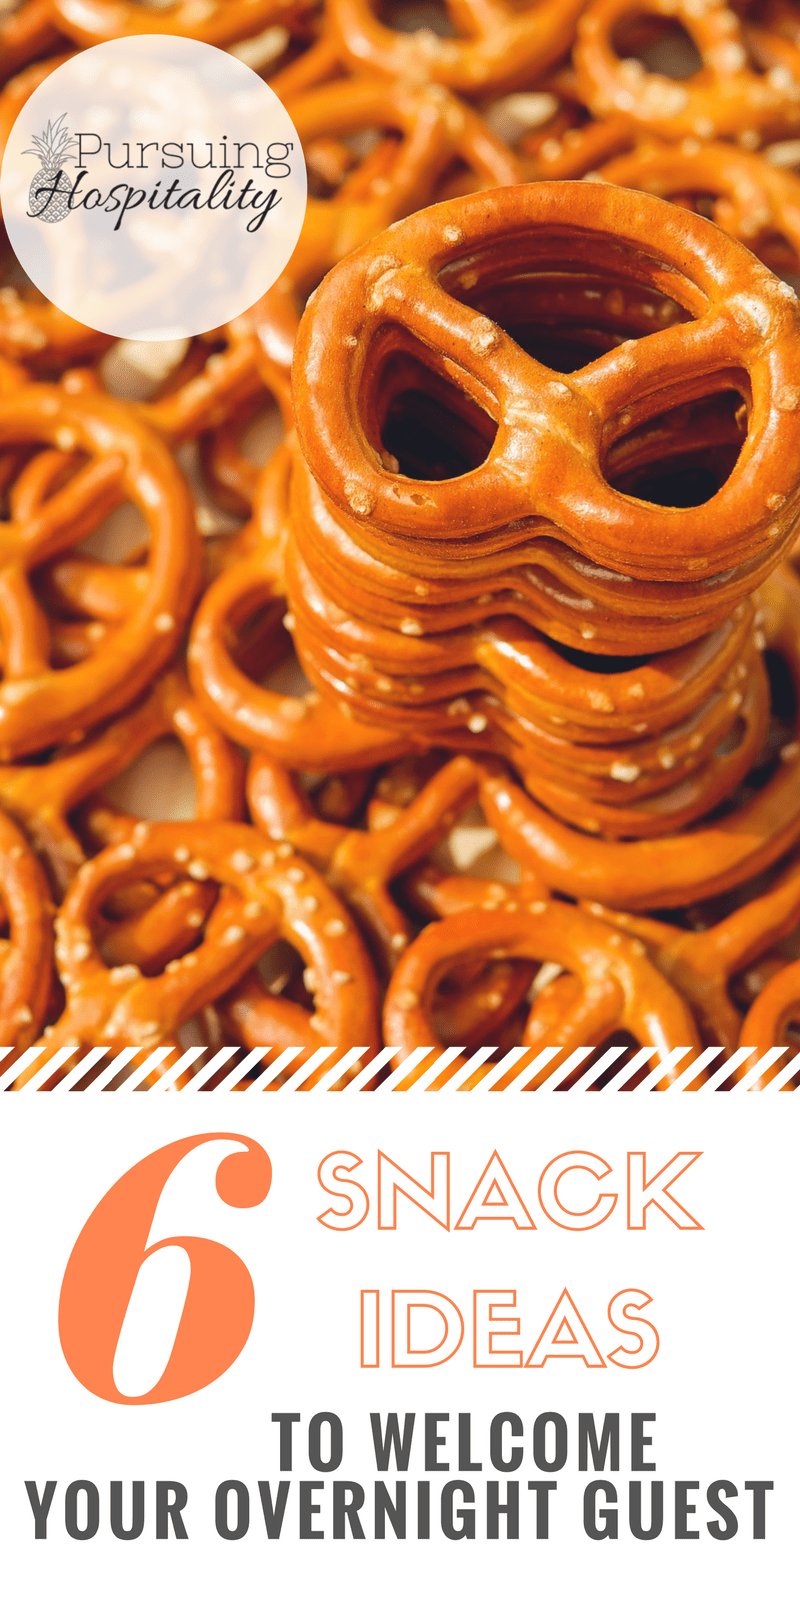 6 Snack ideas to welcome your overnight guest